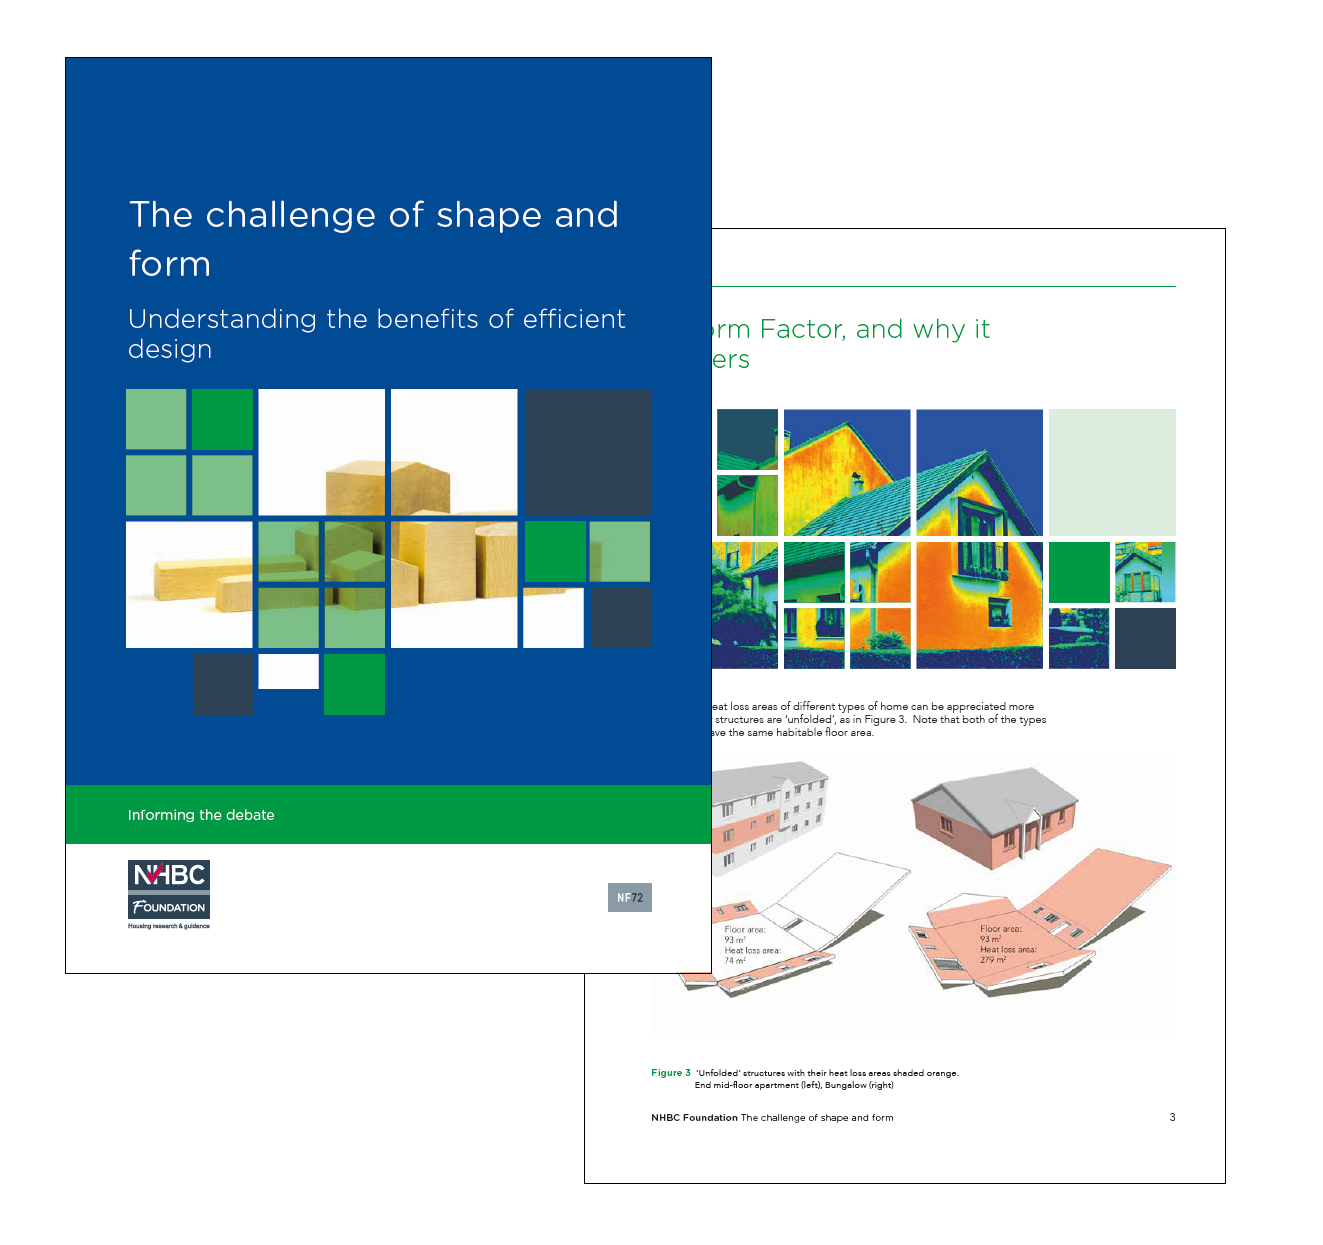 The challenge of shape and form: understanding the benefits of efficient design